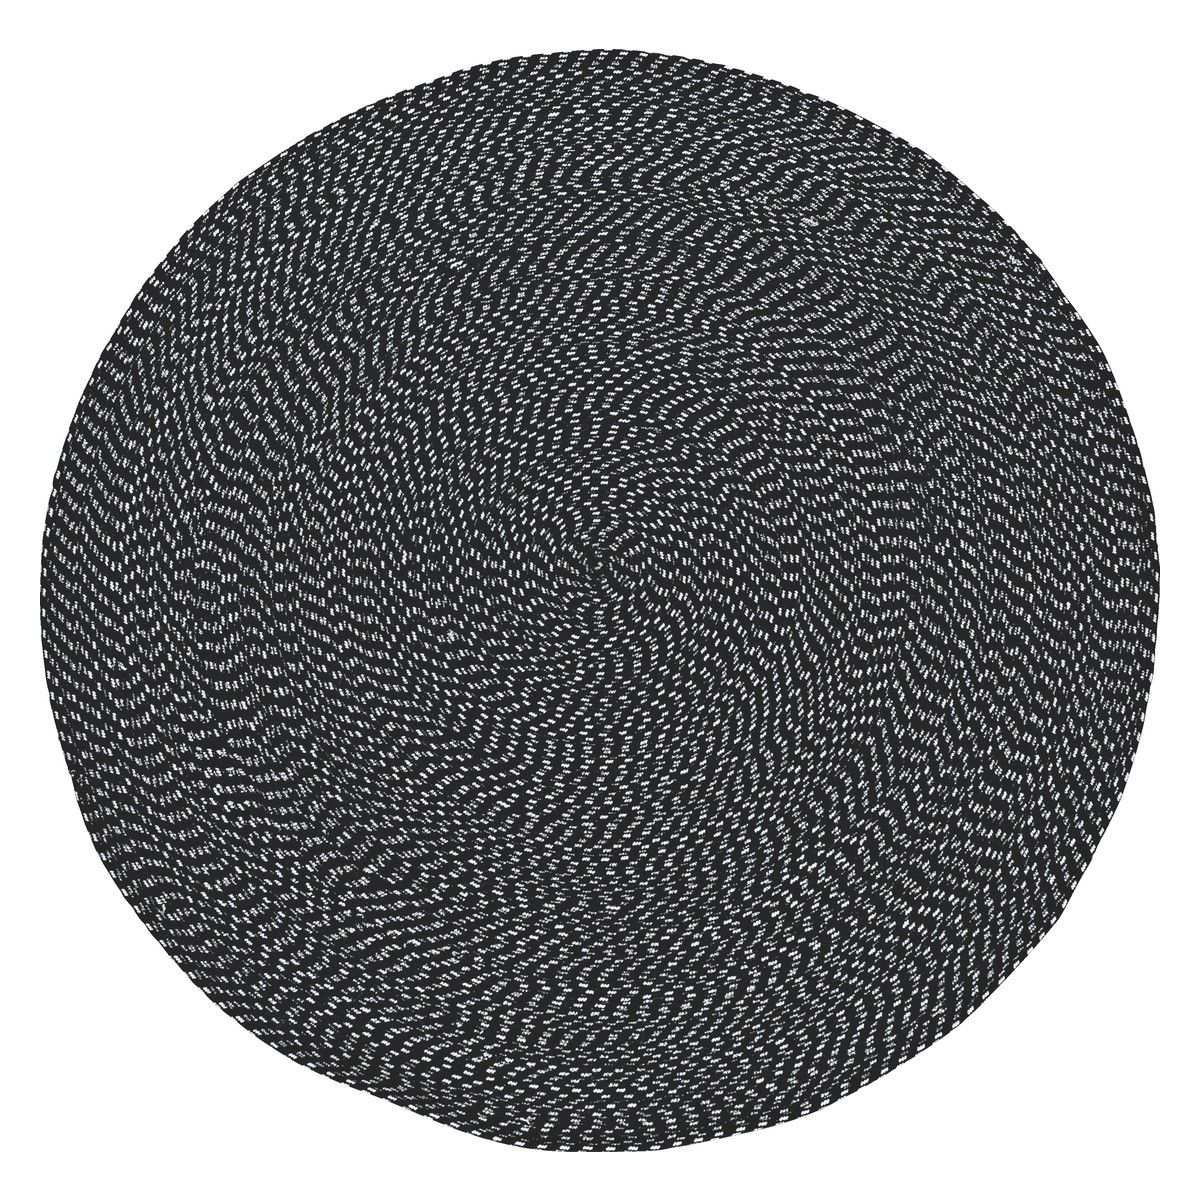 Foster Round Black And White Cotton Rug D150cm Buy Now